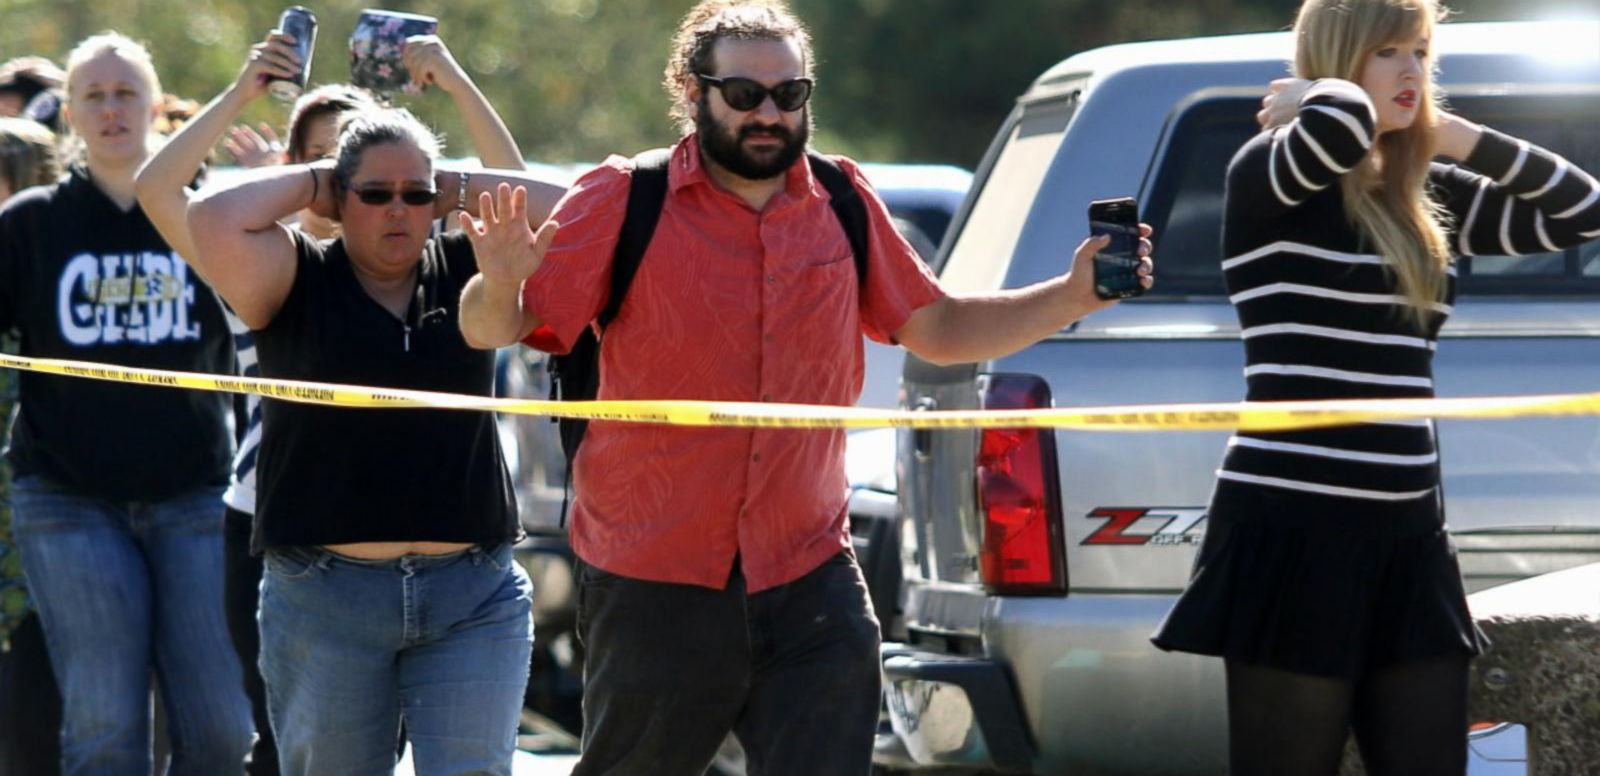 VIDEO: Eyewitness Recounts Ten Minutes of Terror in Roseburg. Oregon